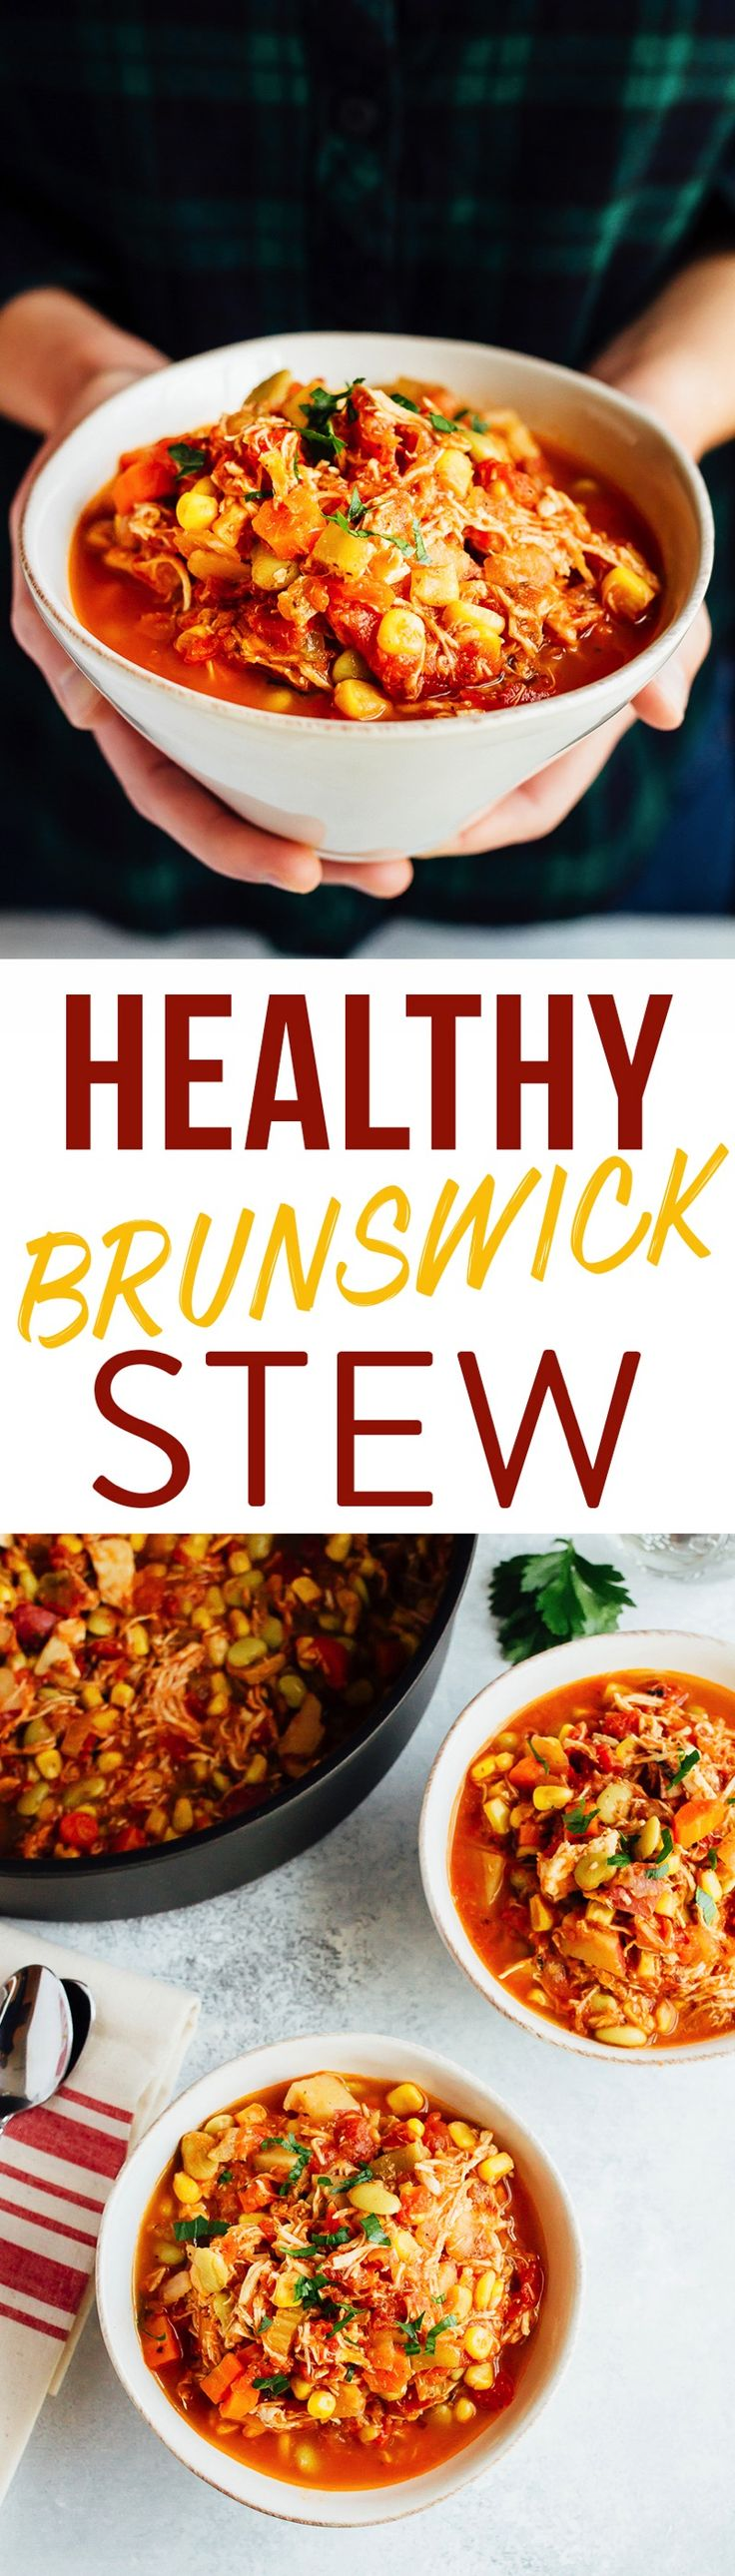 Healthy Brunswick Stew with Shredded Chicken